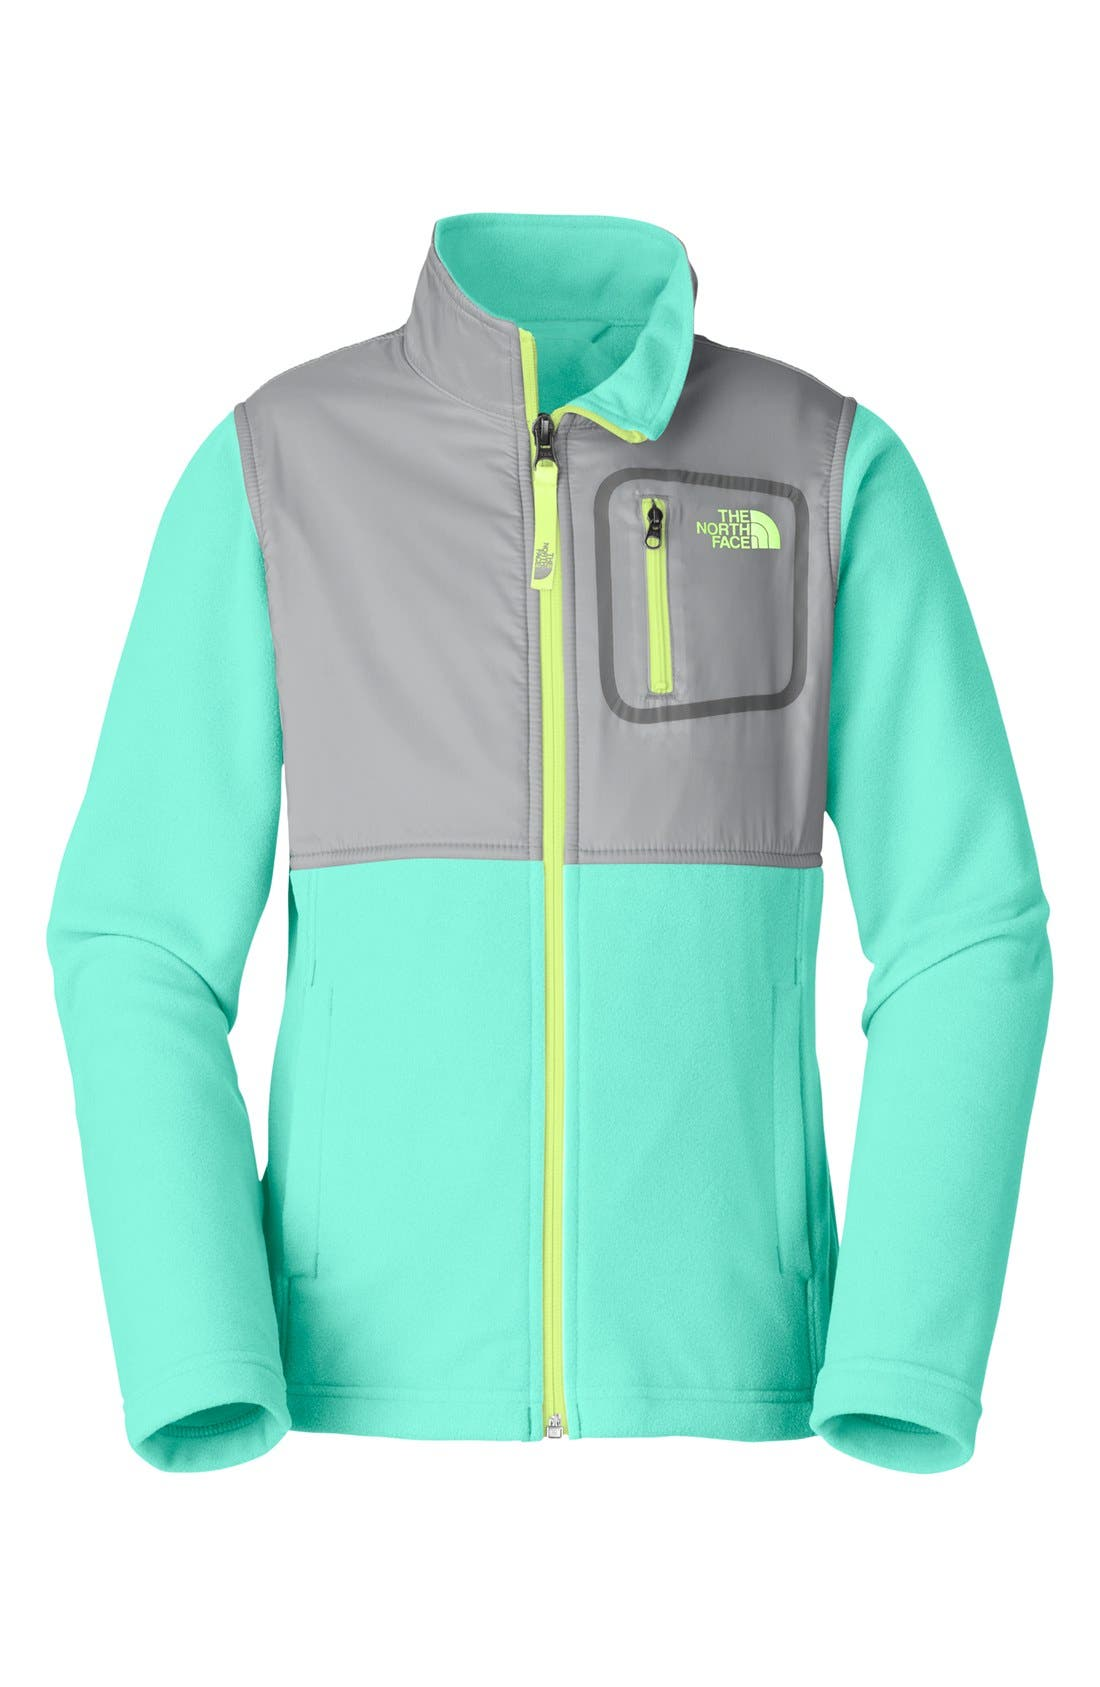 Main Image - The North Face 'Glacier' Jacket (Little Girls & Big Girls)